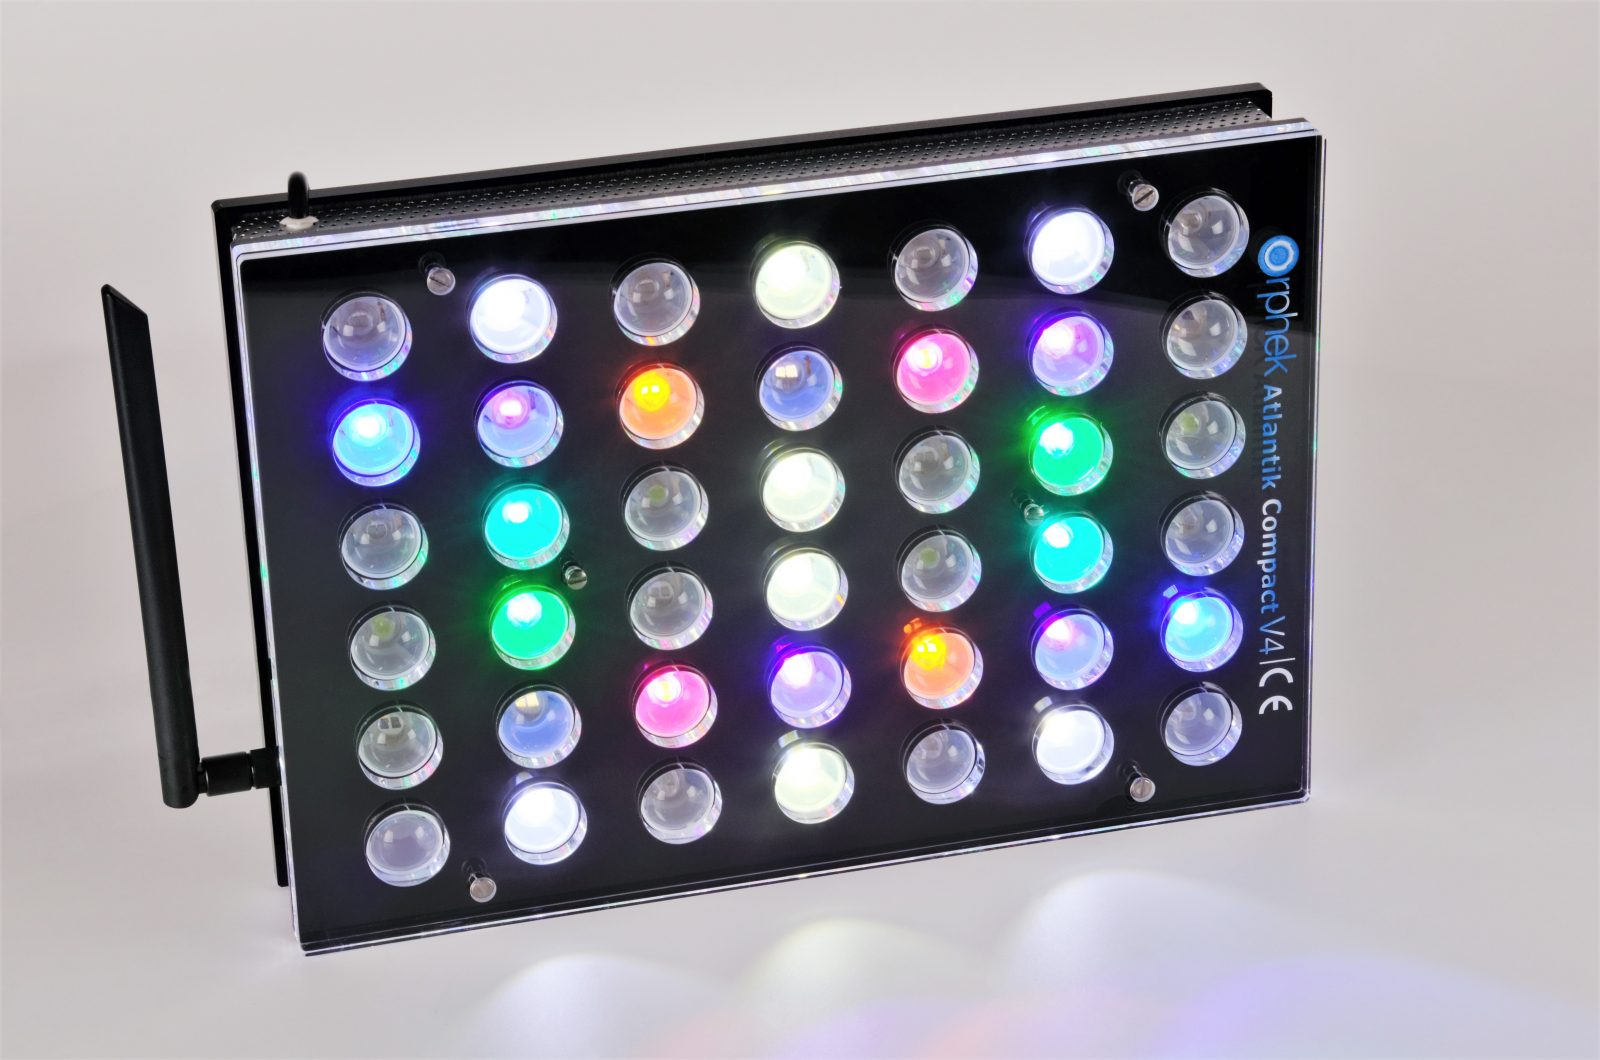 Orphek-Aquarium-LED-Lighting-Atlantik -Compact-V4-light -on-channel 1 + 3 + 4